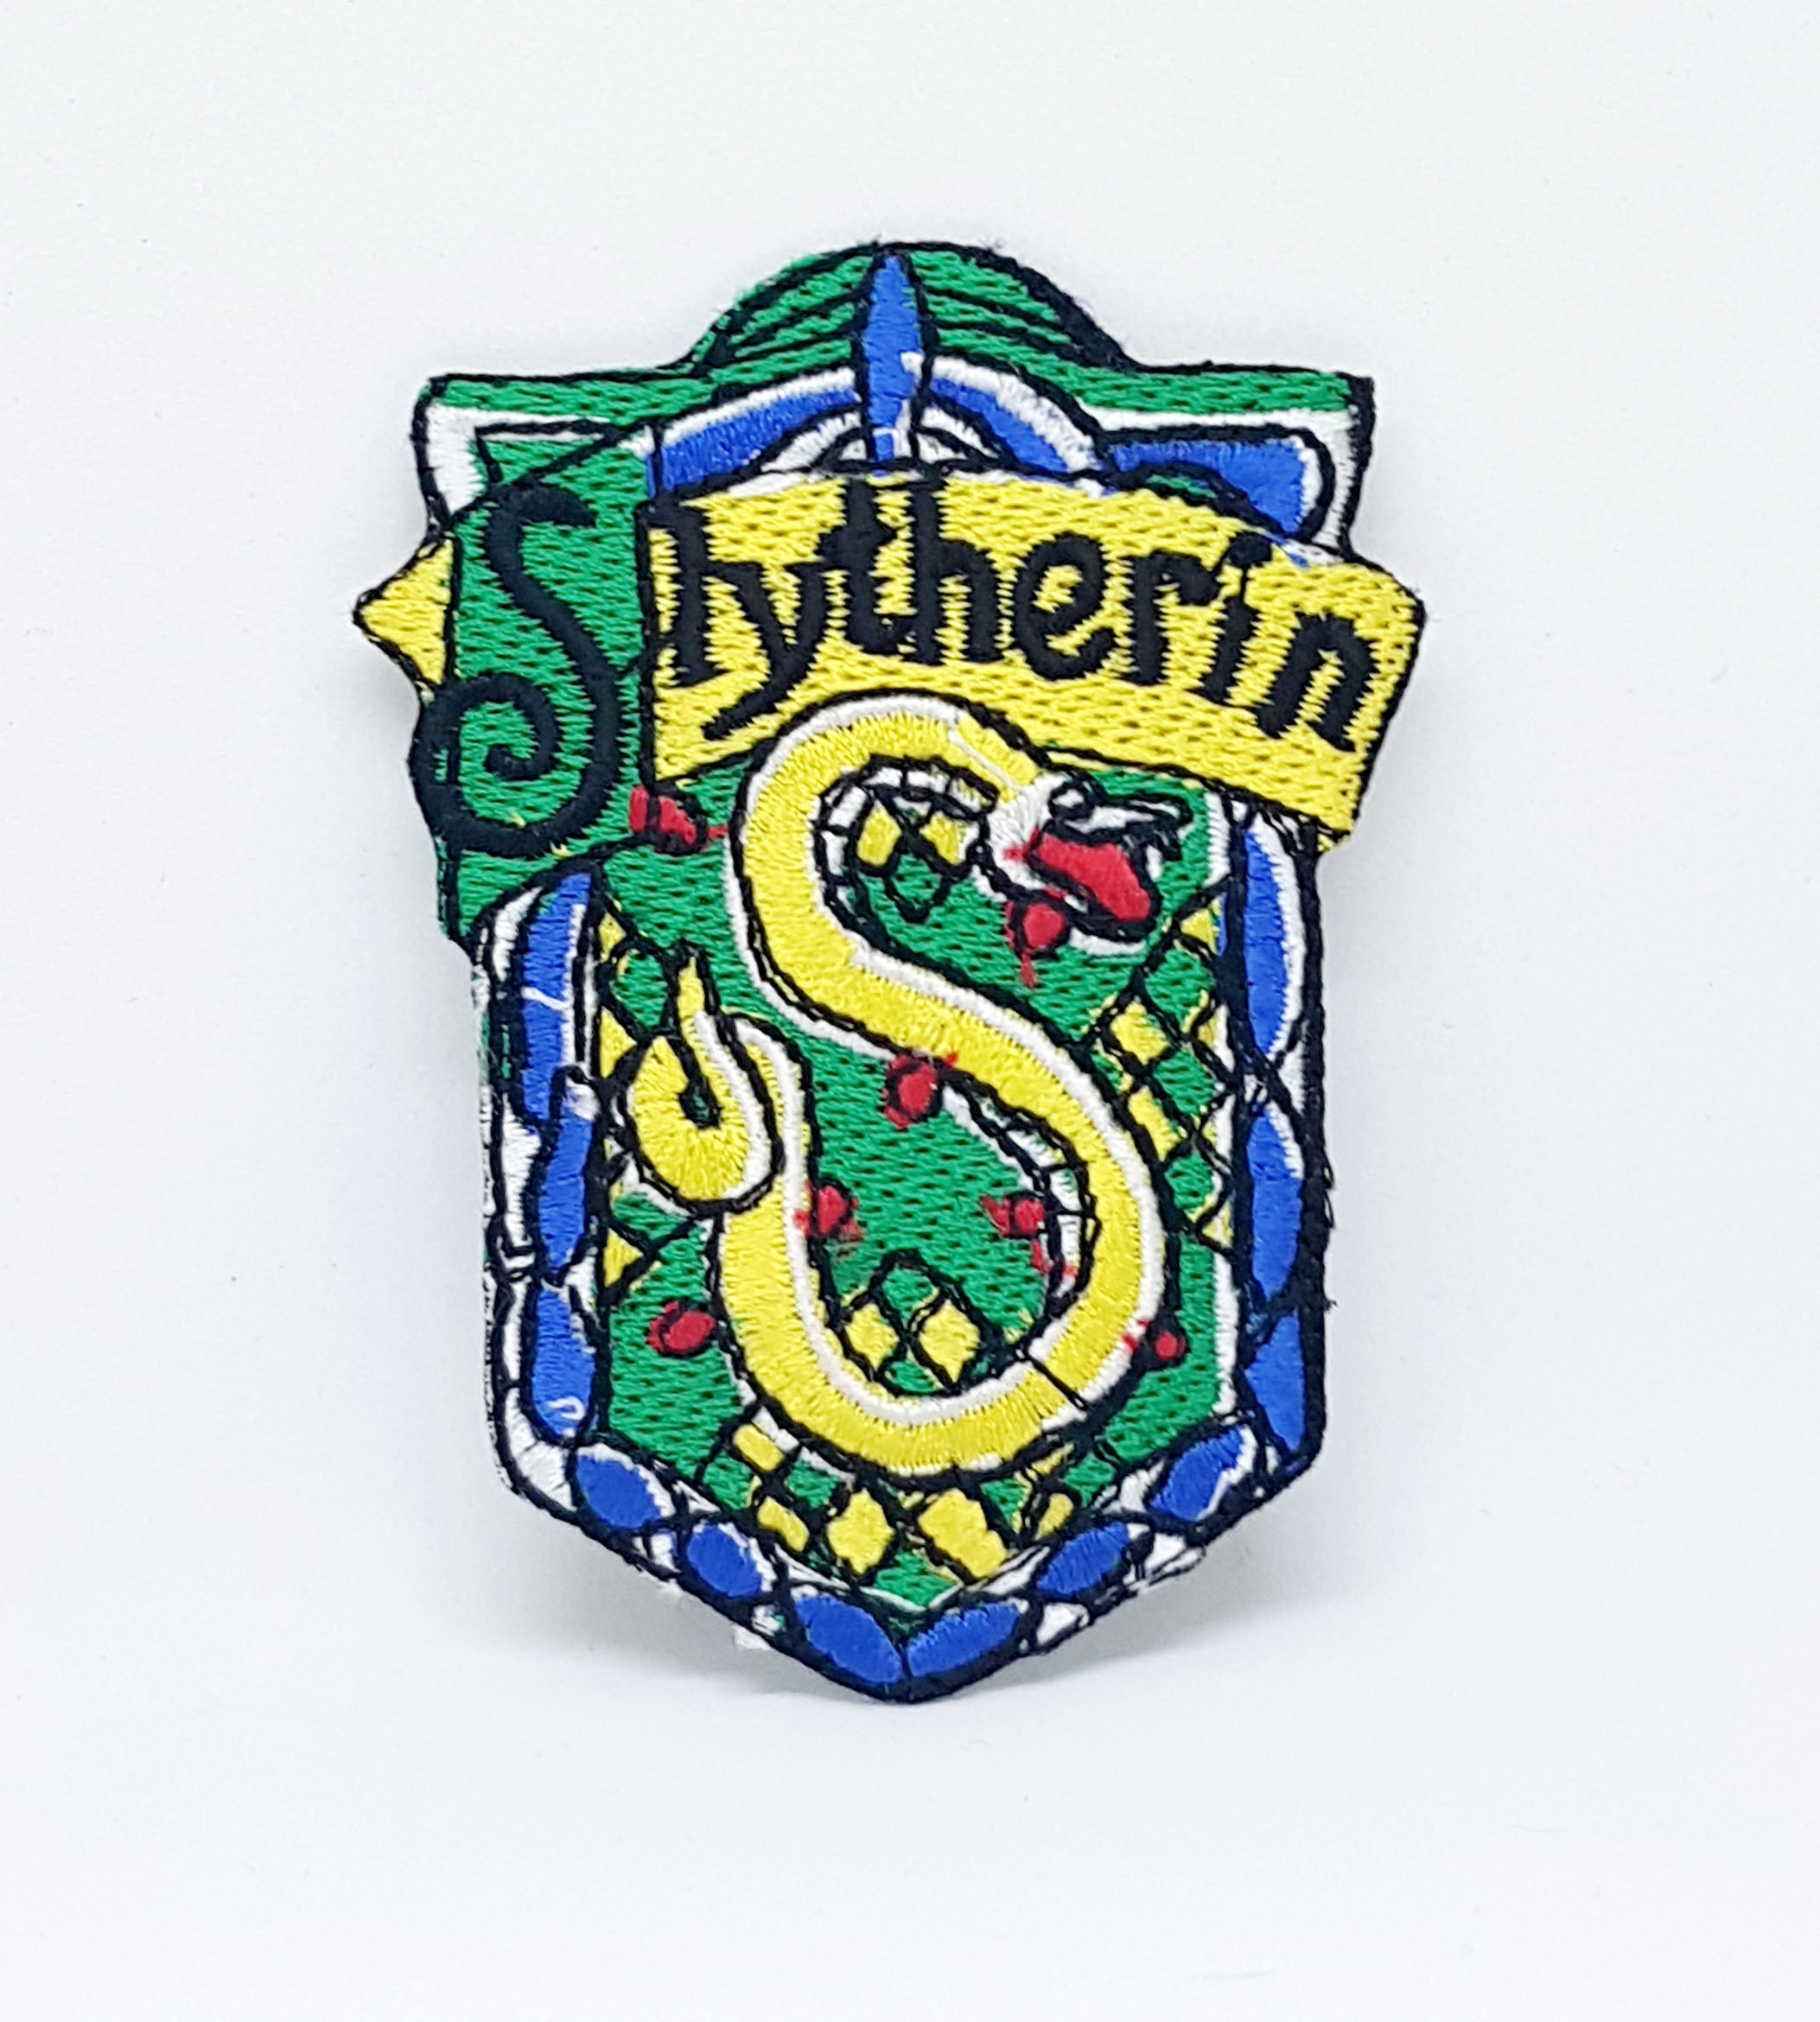 Harry Potter Slytherin Iron Sew on Embroidered Patch - Patches-Badges